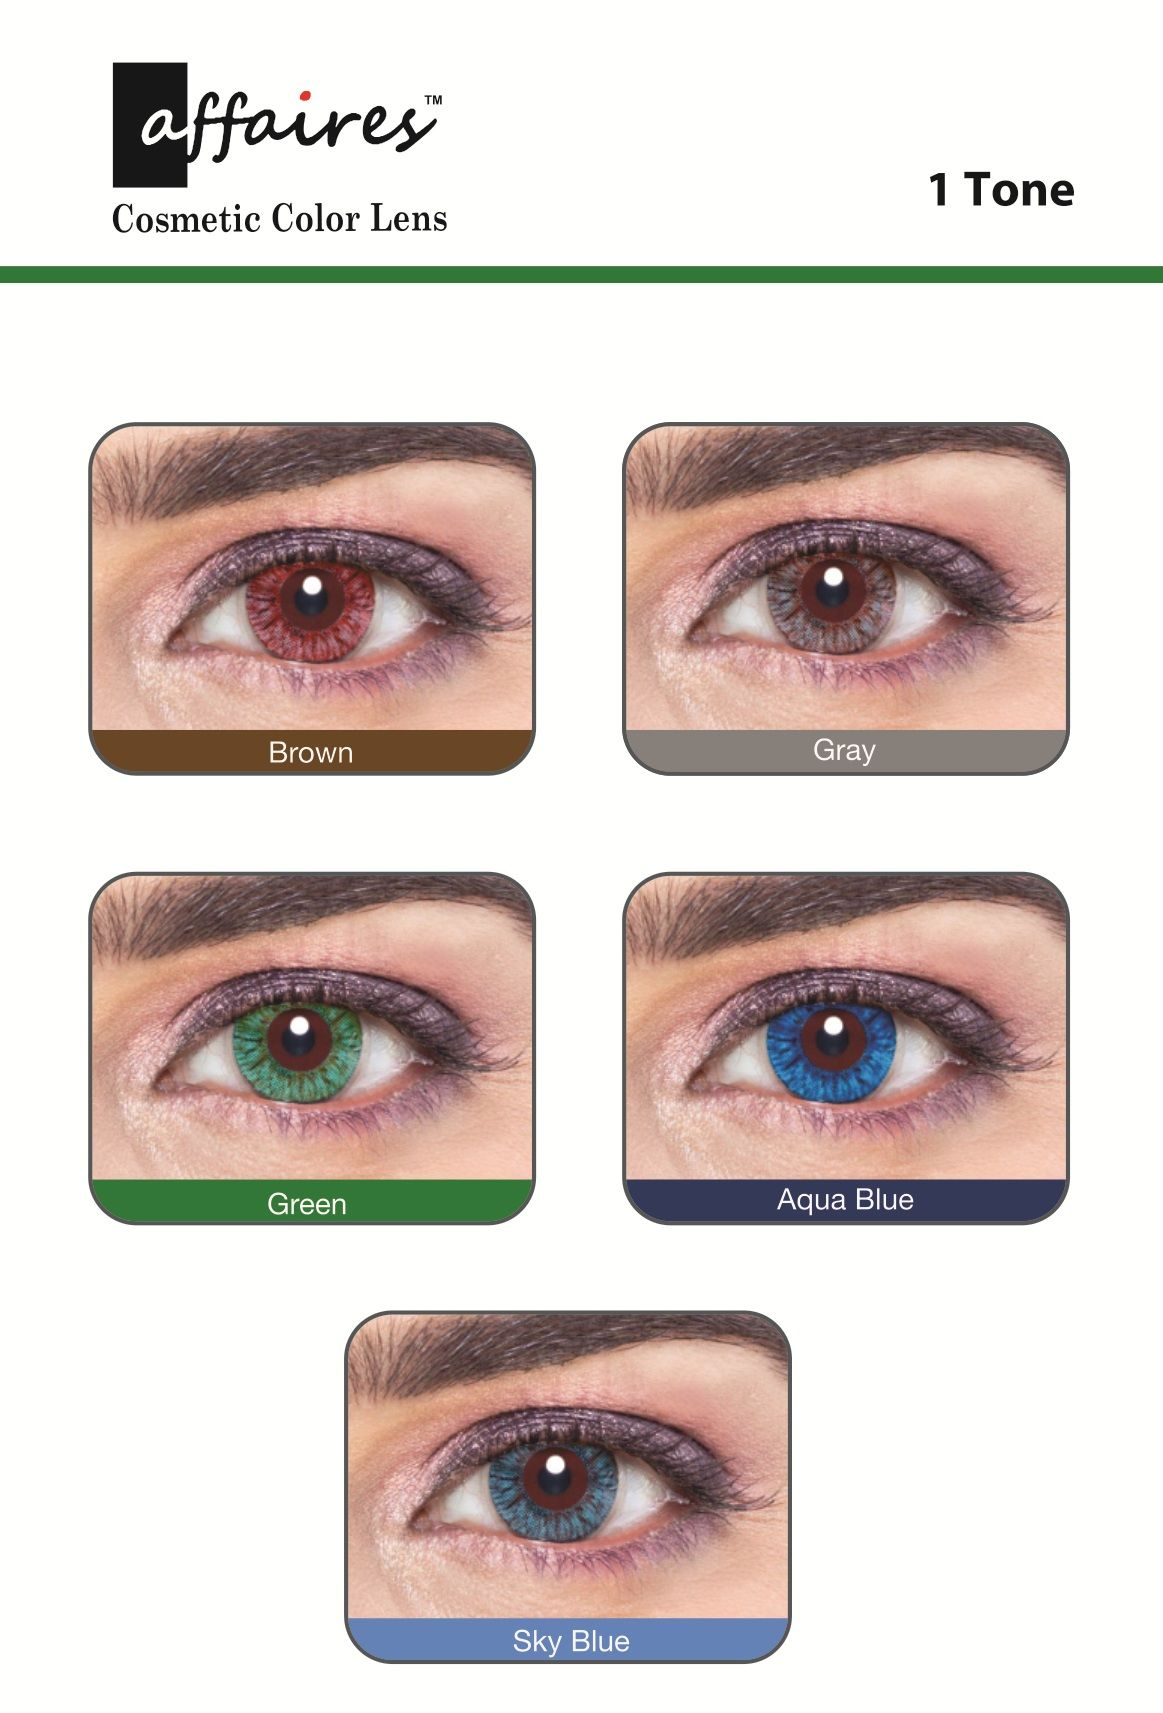 Affaires color contact lenses chart 1 tone affaires color affaires color contact lenses chart 1 tone geenschuldenfo Image collections